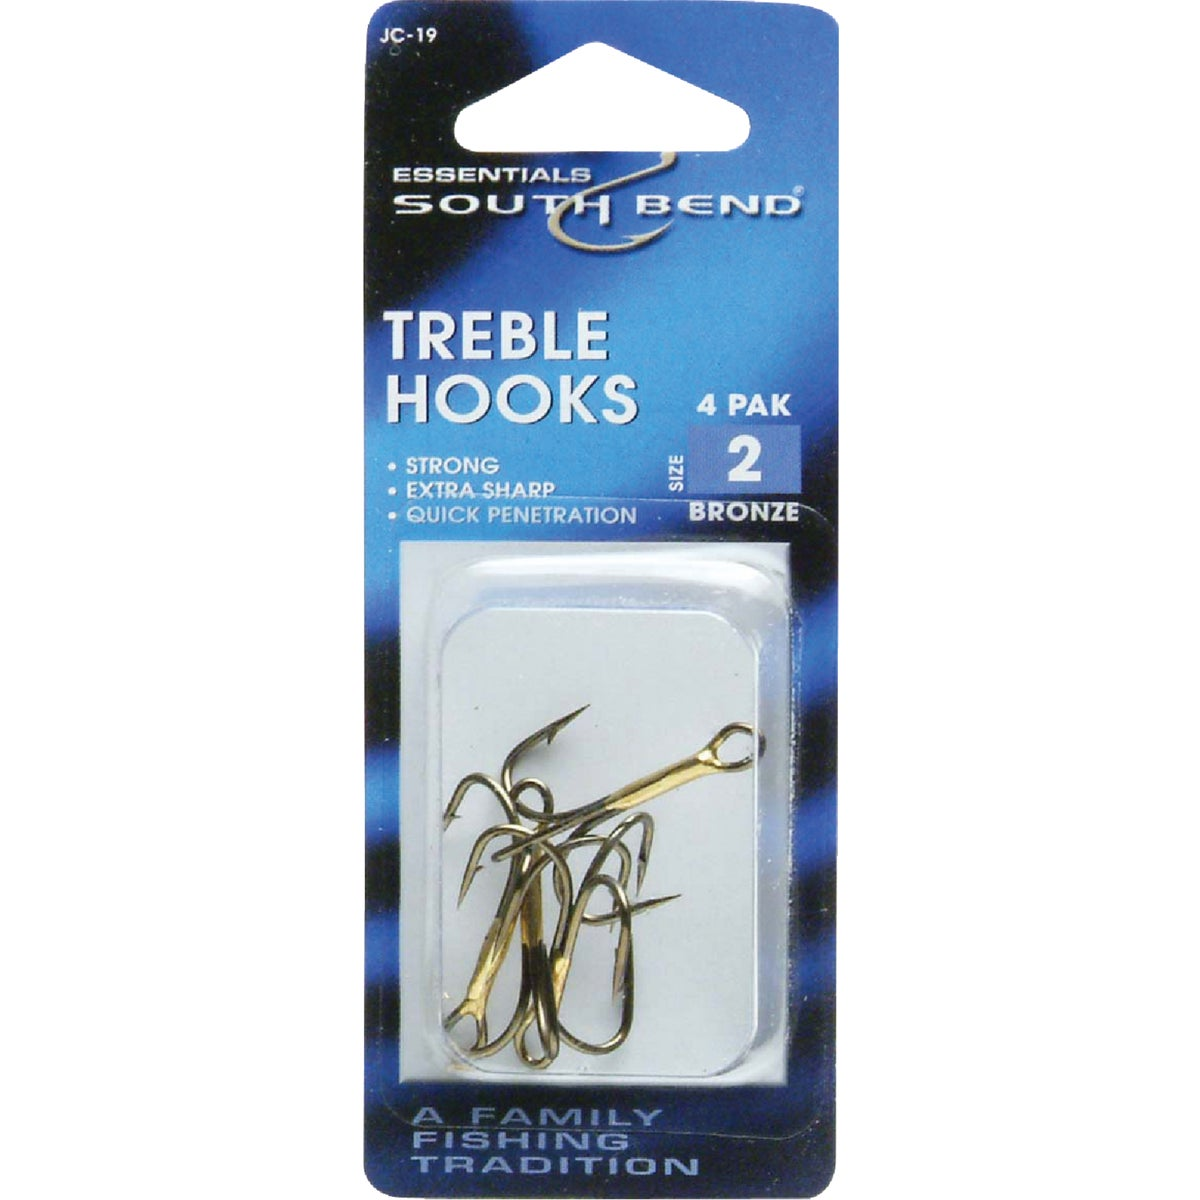 SZ 2 TREBLE HOOK - JC19 by South Bend Sptg Good